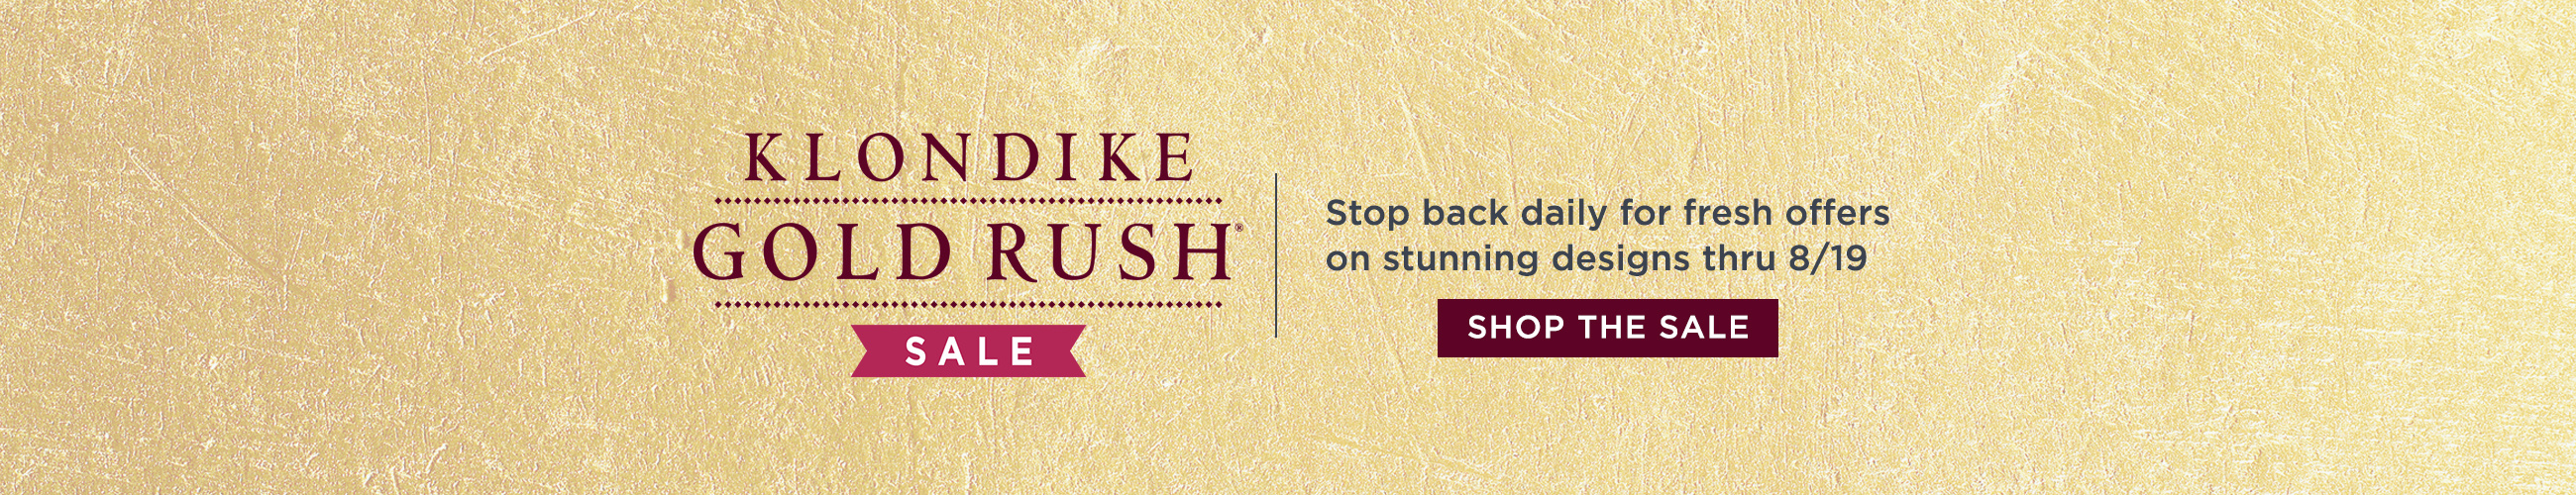 Klondike Gold Rush — Stop back daily for fresh offers on stunning designs thru 8/19 SHOP THE SALE